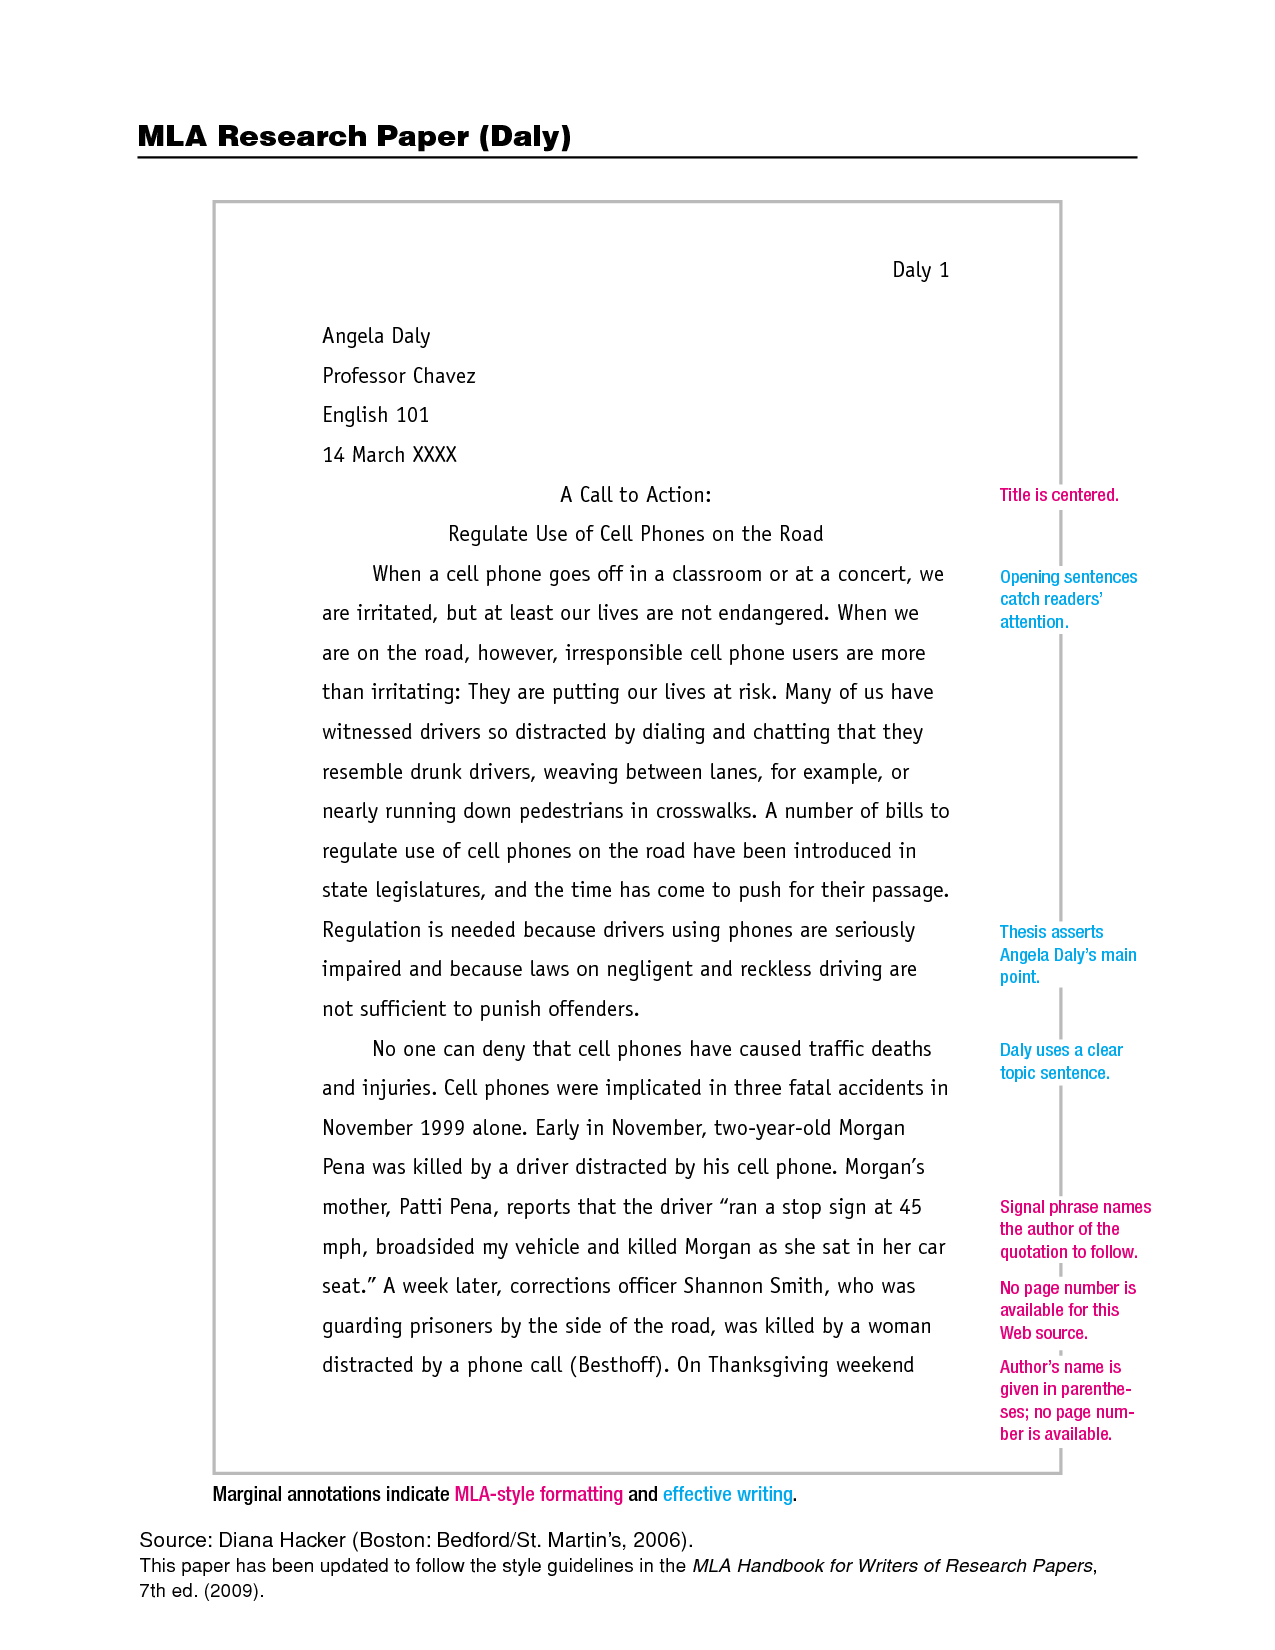 mla research paper template Download free sample of research paper format, sample research paper, mla and apa research paper templates find out proper formatted custom research papers  learn about scientific research paper format, outline format, and find a good research paper sample.